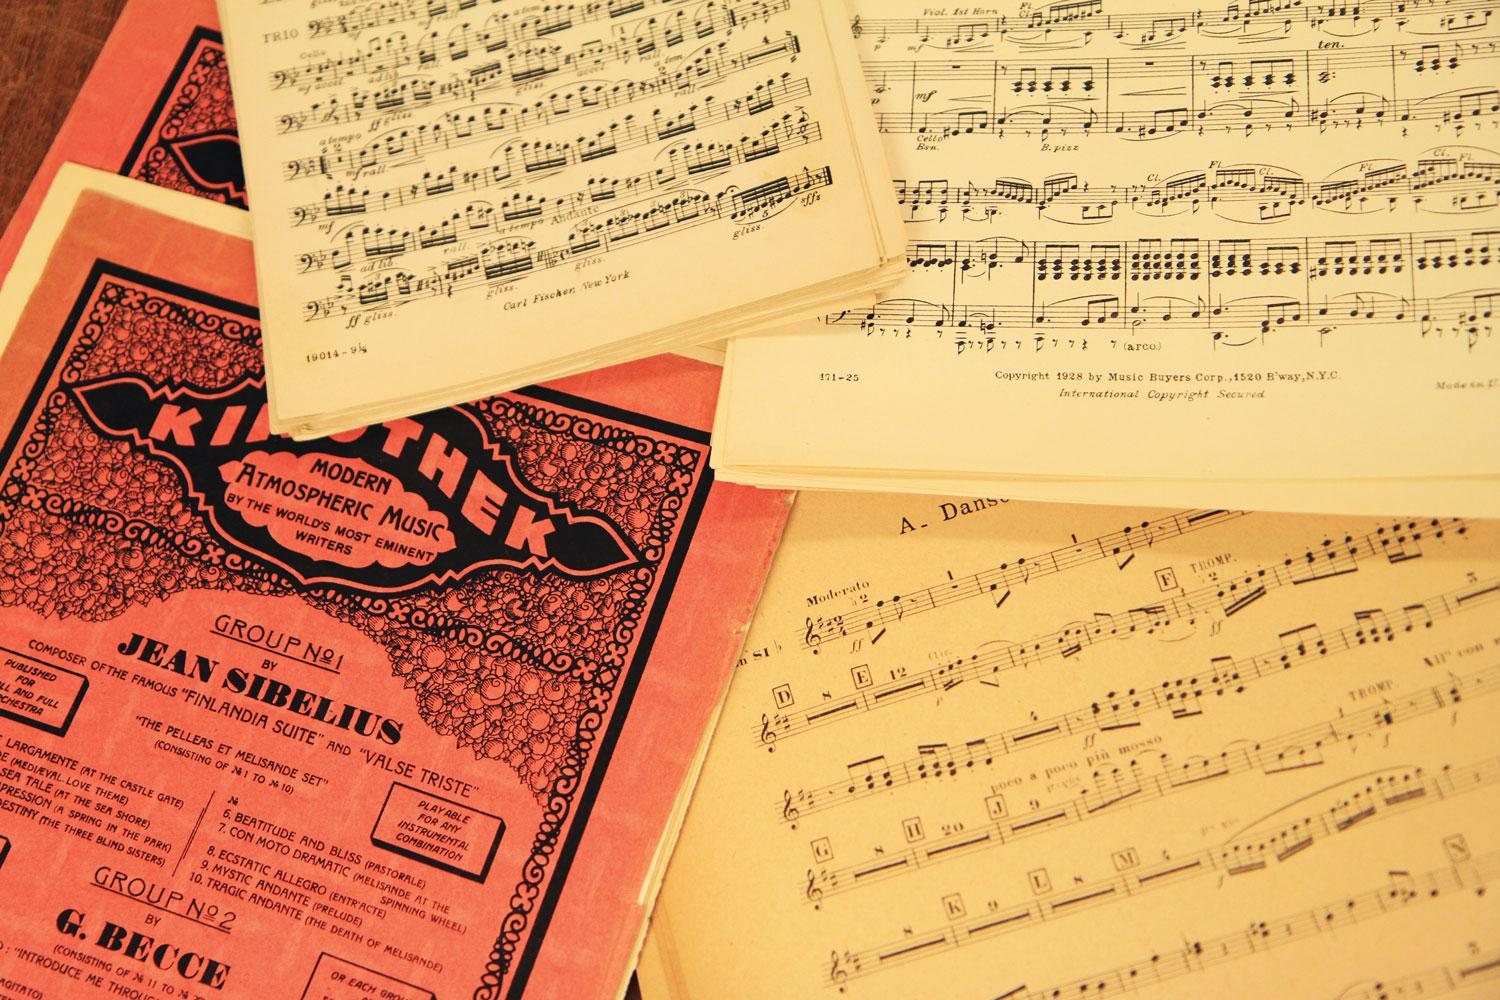 Collage of music sheets